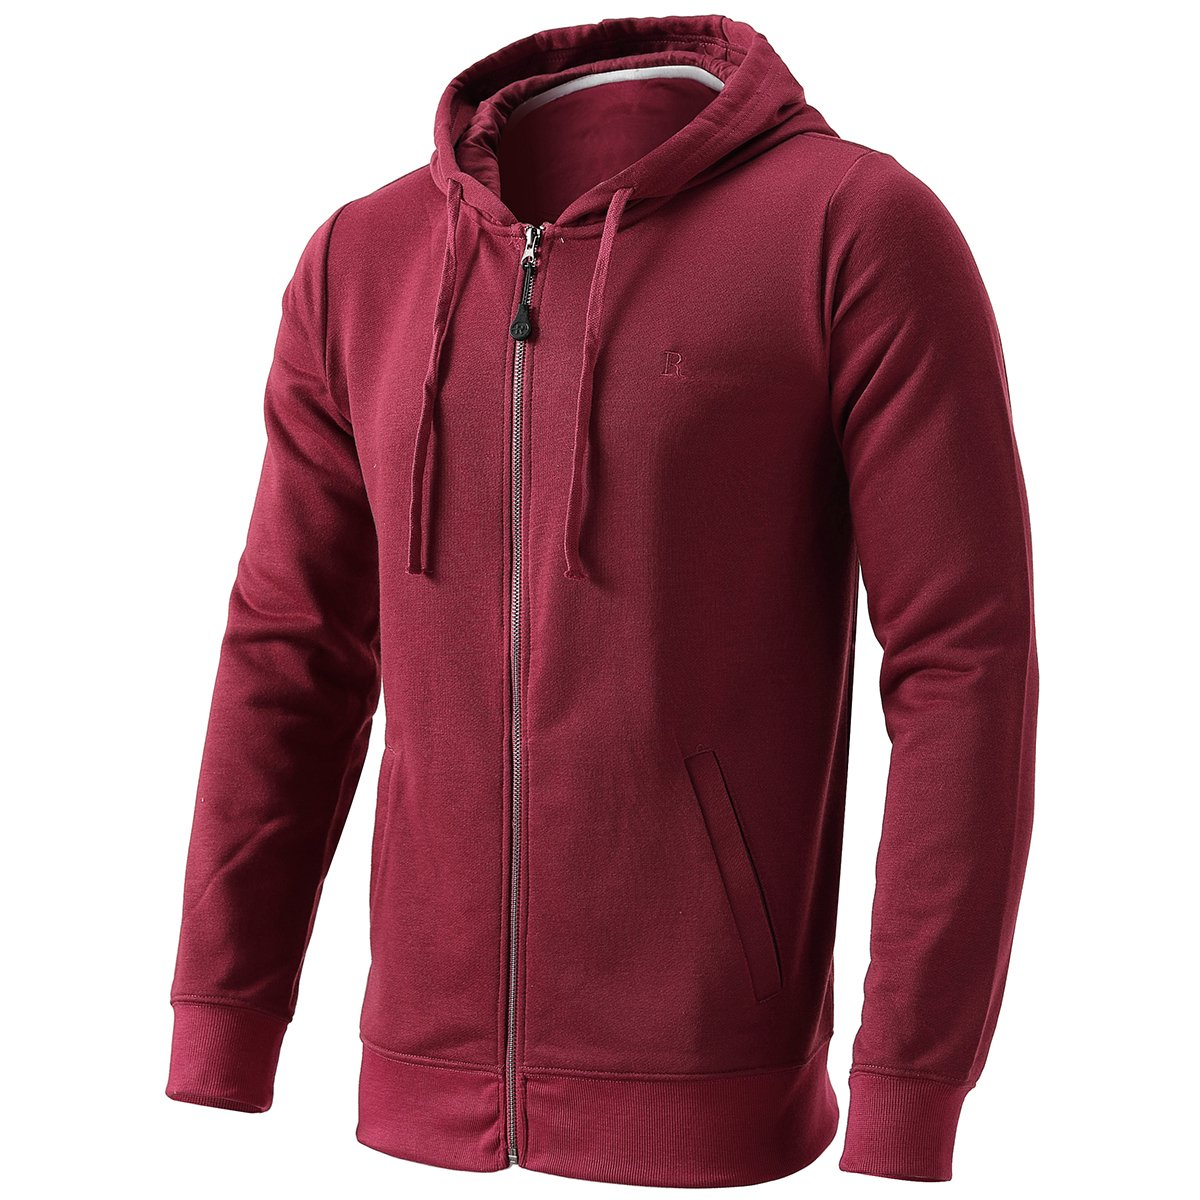 INFLATION Men's Zip-up Hoodie Long Sleeve French Terry Lightweight Basic Zip-up Hoodie Jacket 8 Color Choices by INFLATION (Image #2)